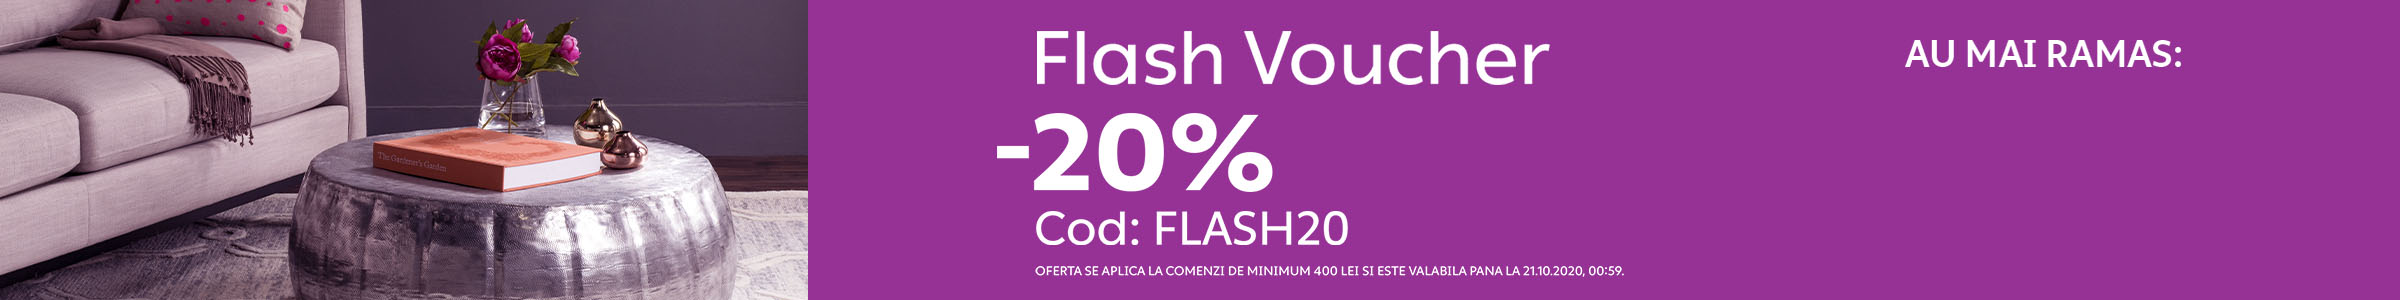 Flash Voucher